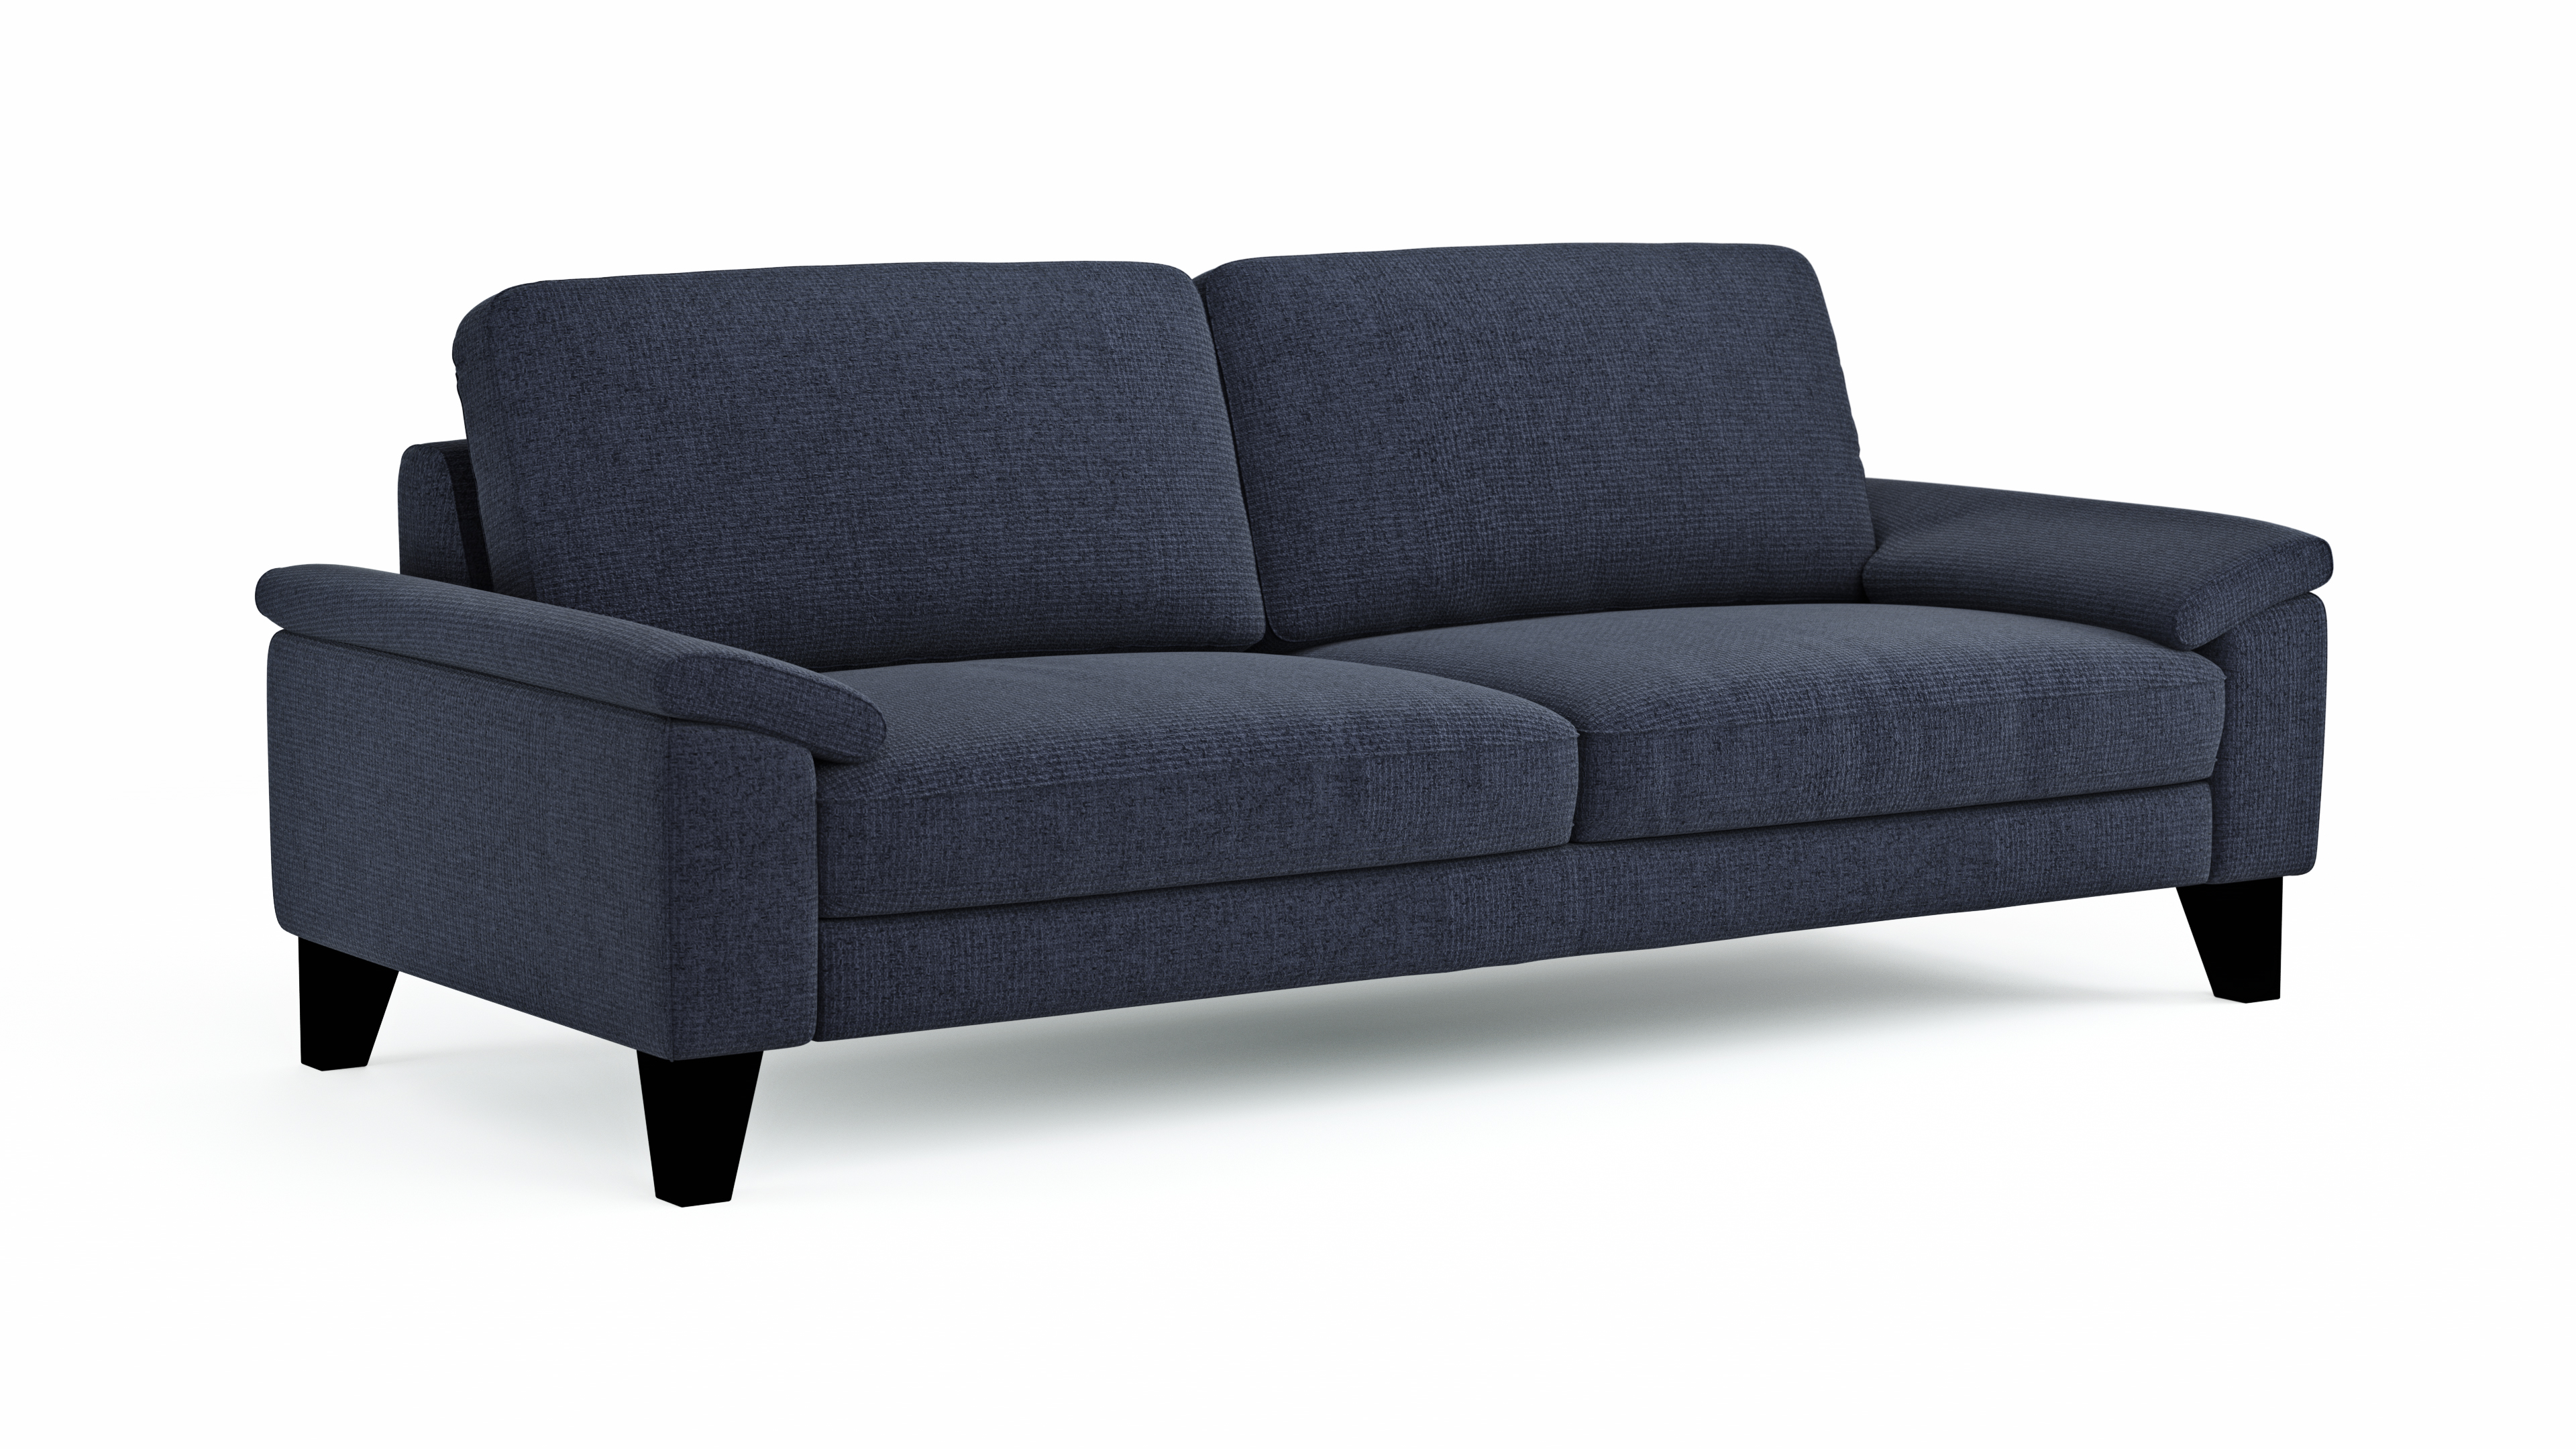 Global Family 3 Sitzer Sofa Oviedo freisteller 2 102294 | Homepoet